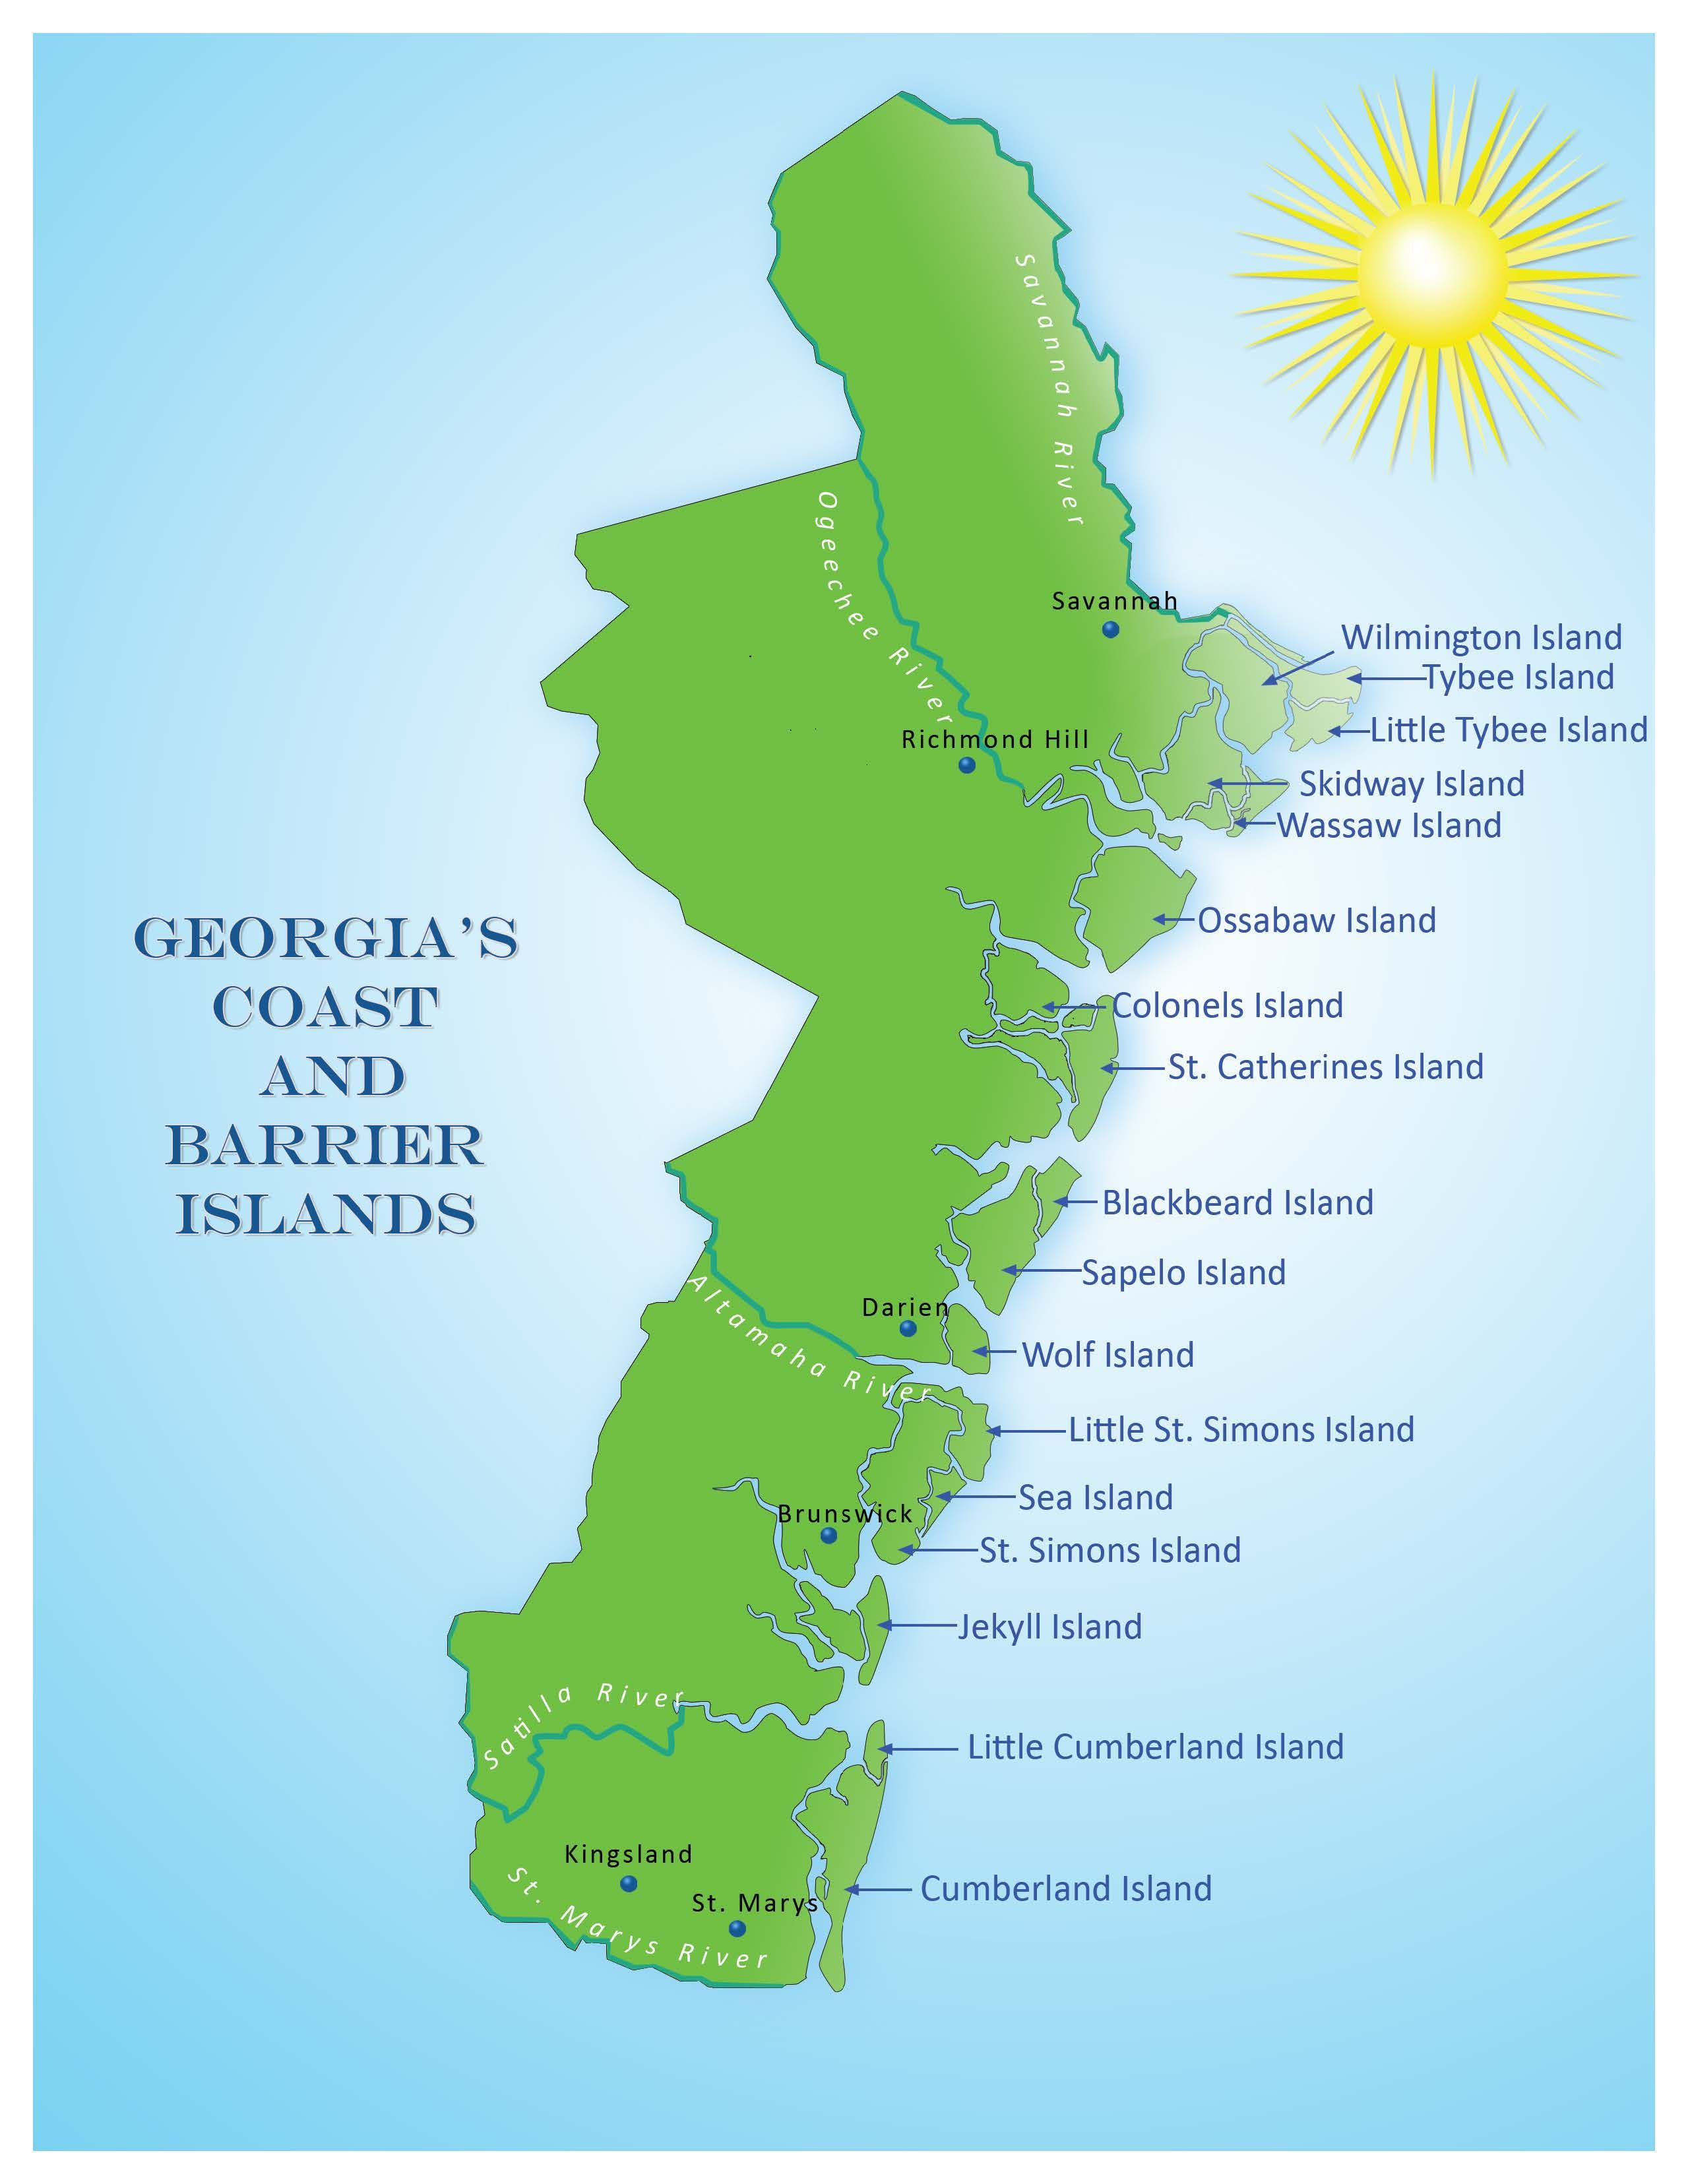 Map Of Georgia Barrier Islands.Click The Map For A Closer Look At Georgia S Coastline And Barrier